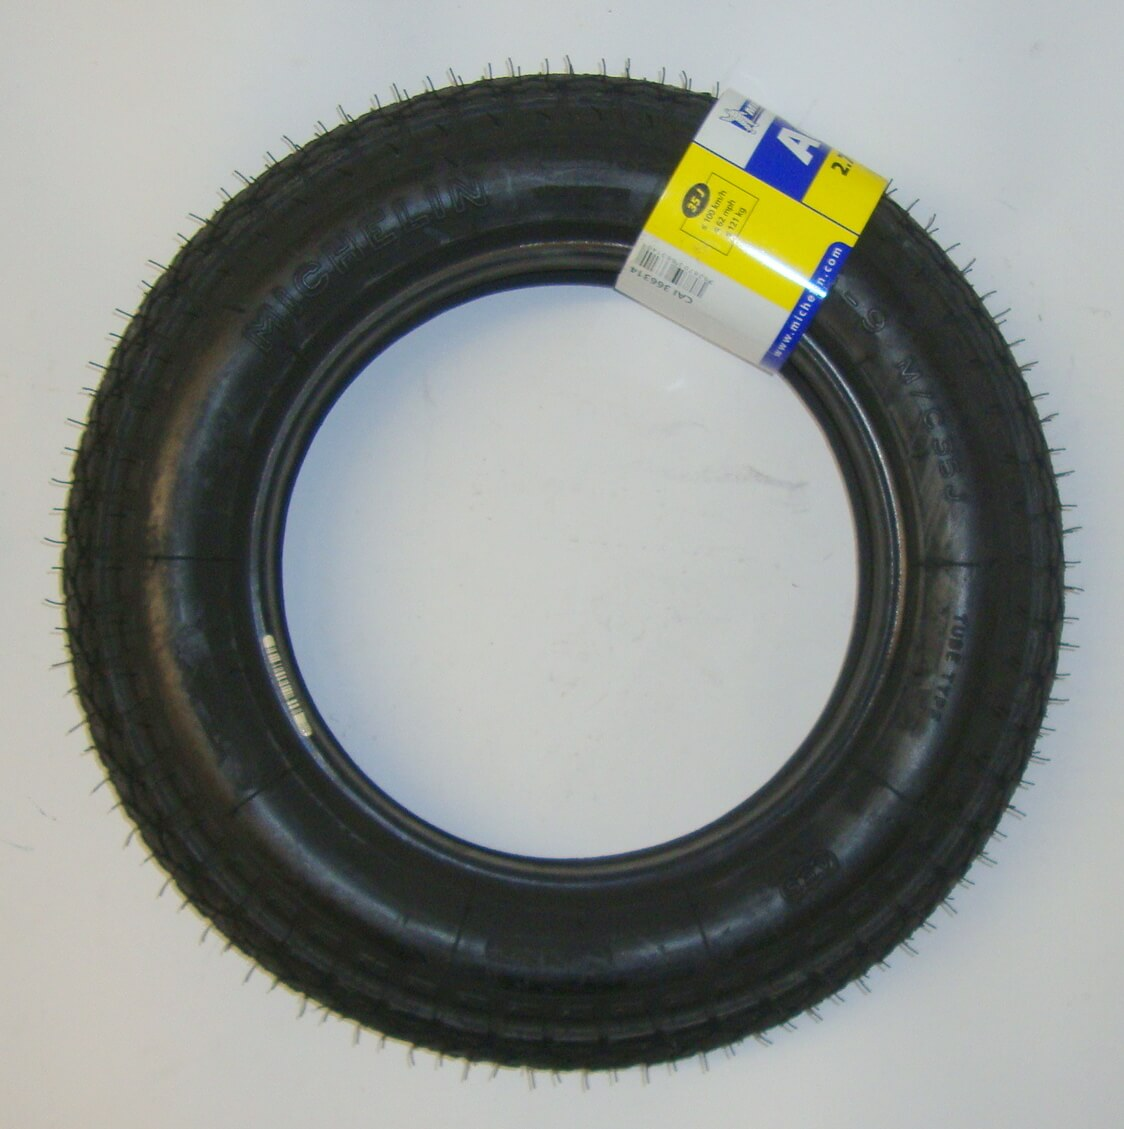 Tire, MICHELIN ACS, Classic, 2.75 x 9, 35 J TT